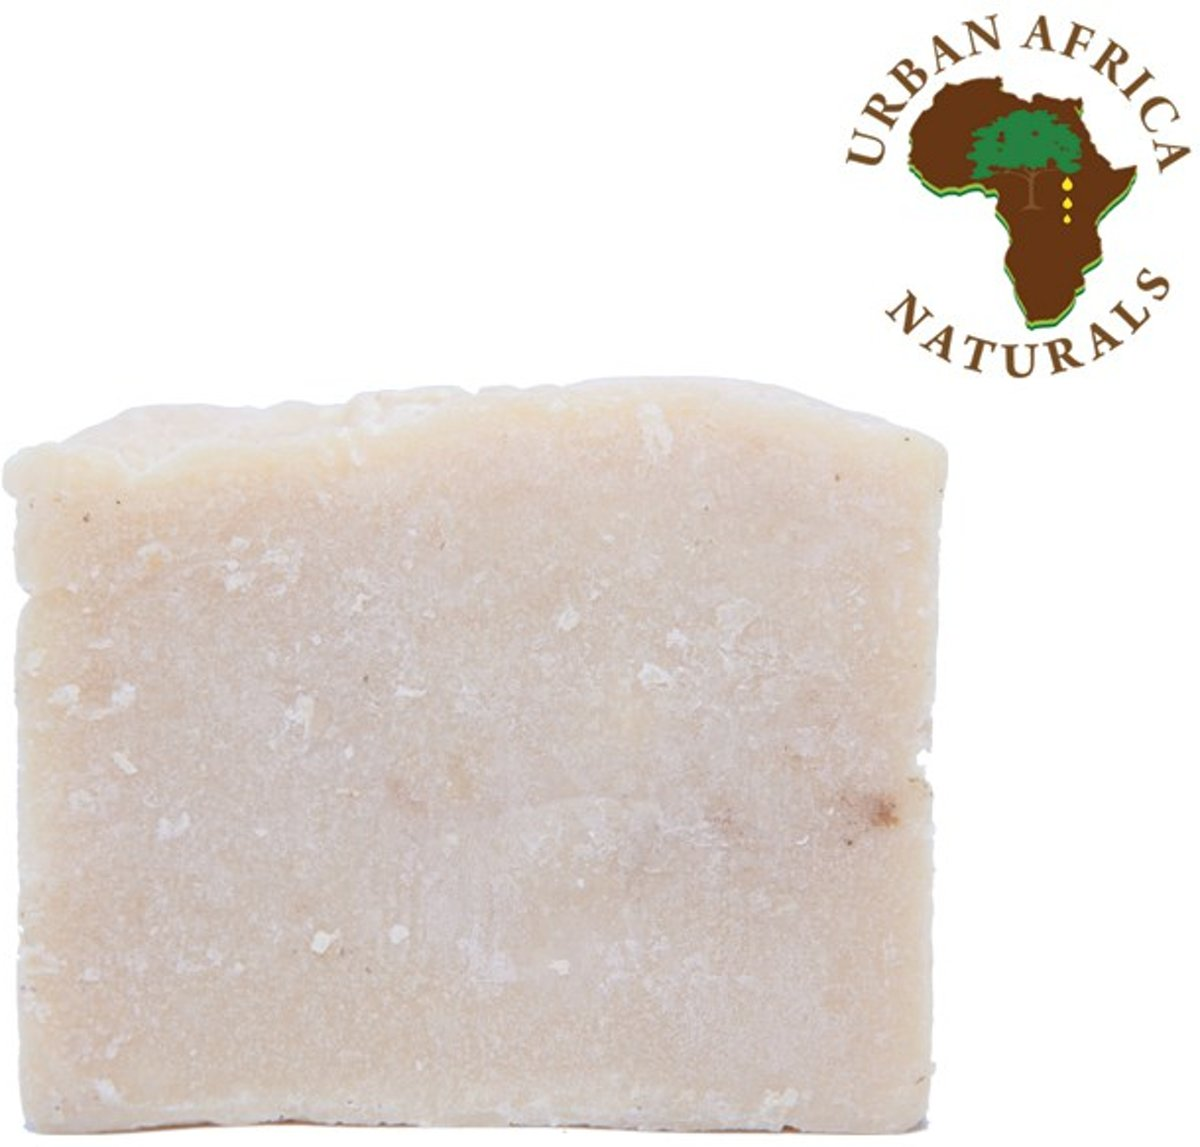 Urban Africa Naturals Shea Butter Goatmilk Soap